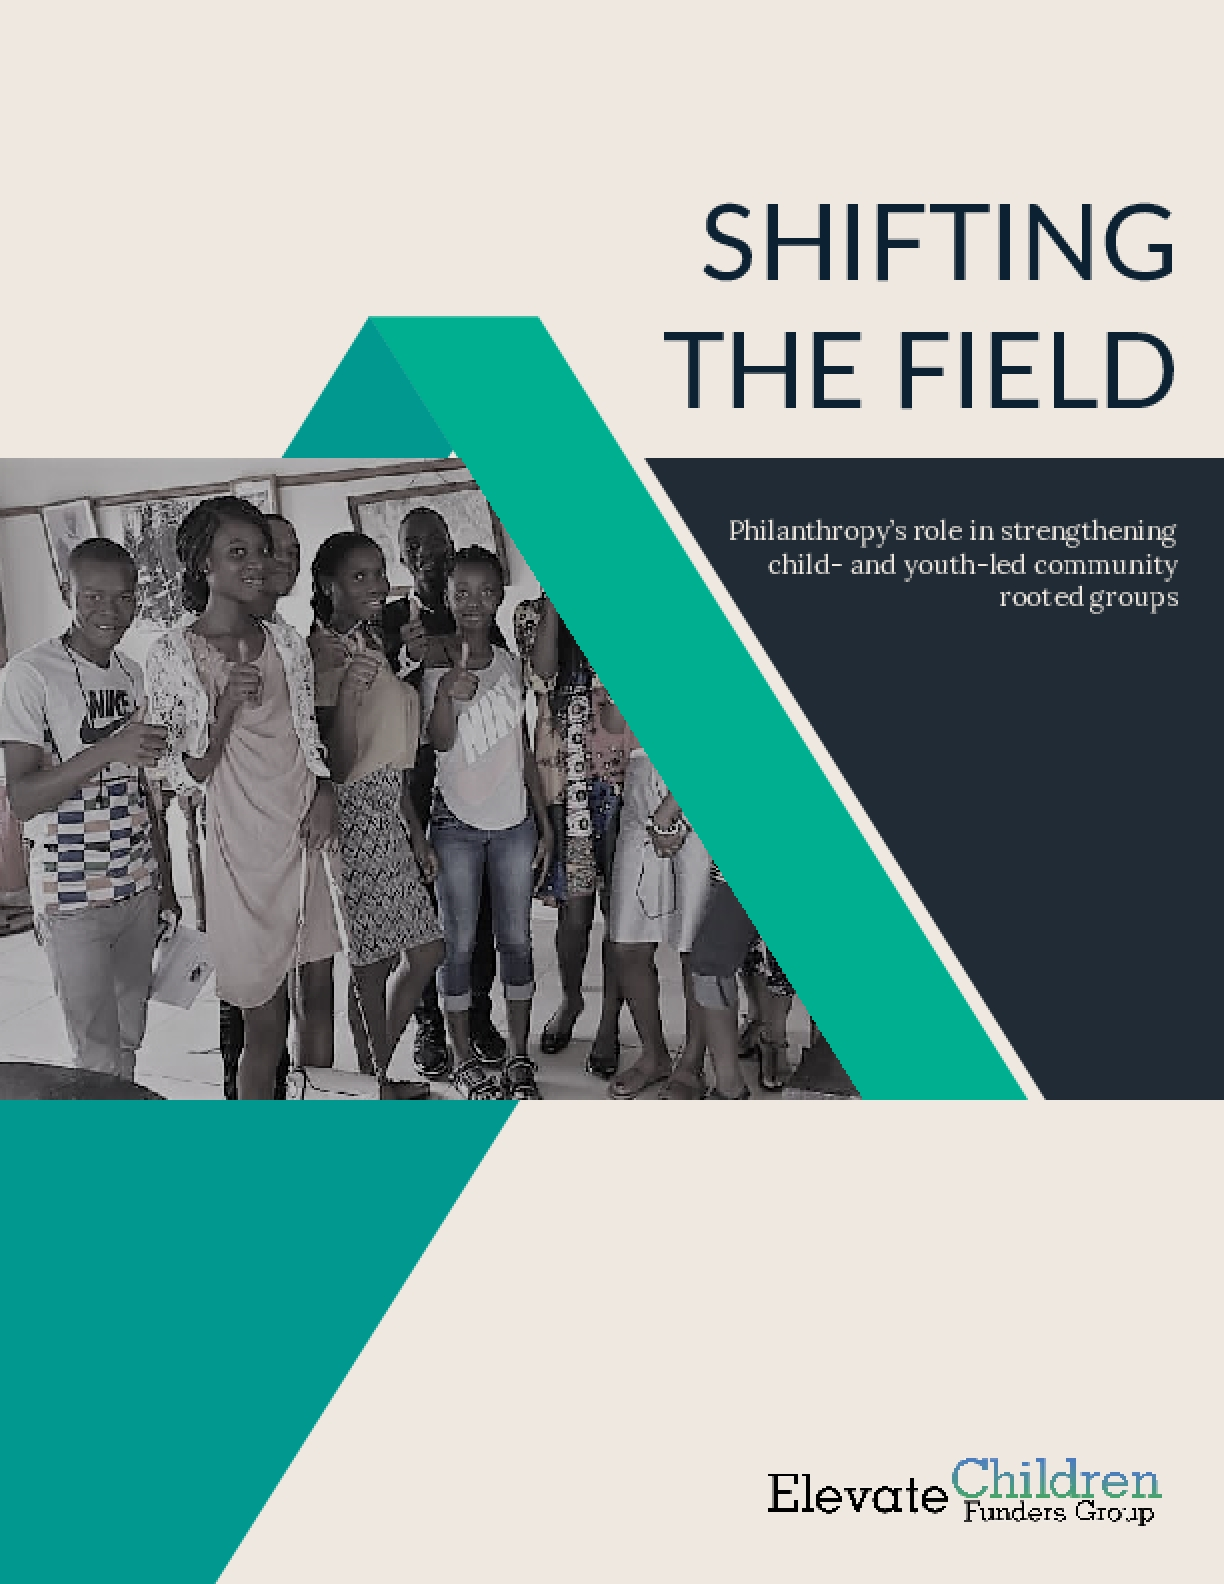 Shifting the Field: Philanthropy's role in strengthening child- and youth-led community rooted groups